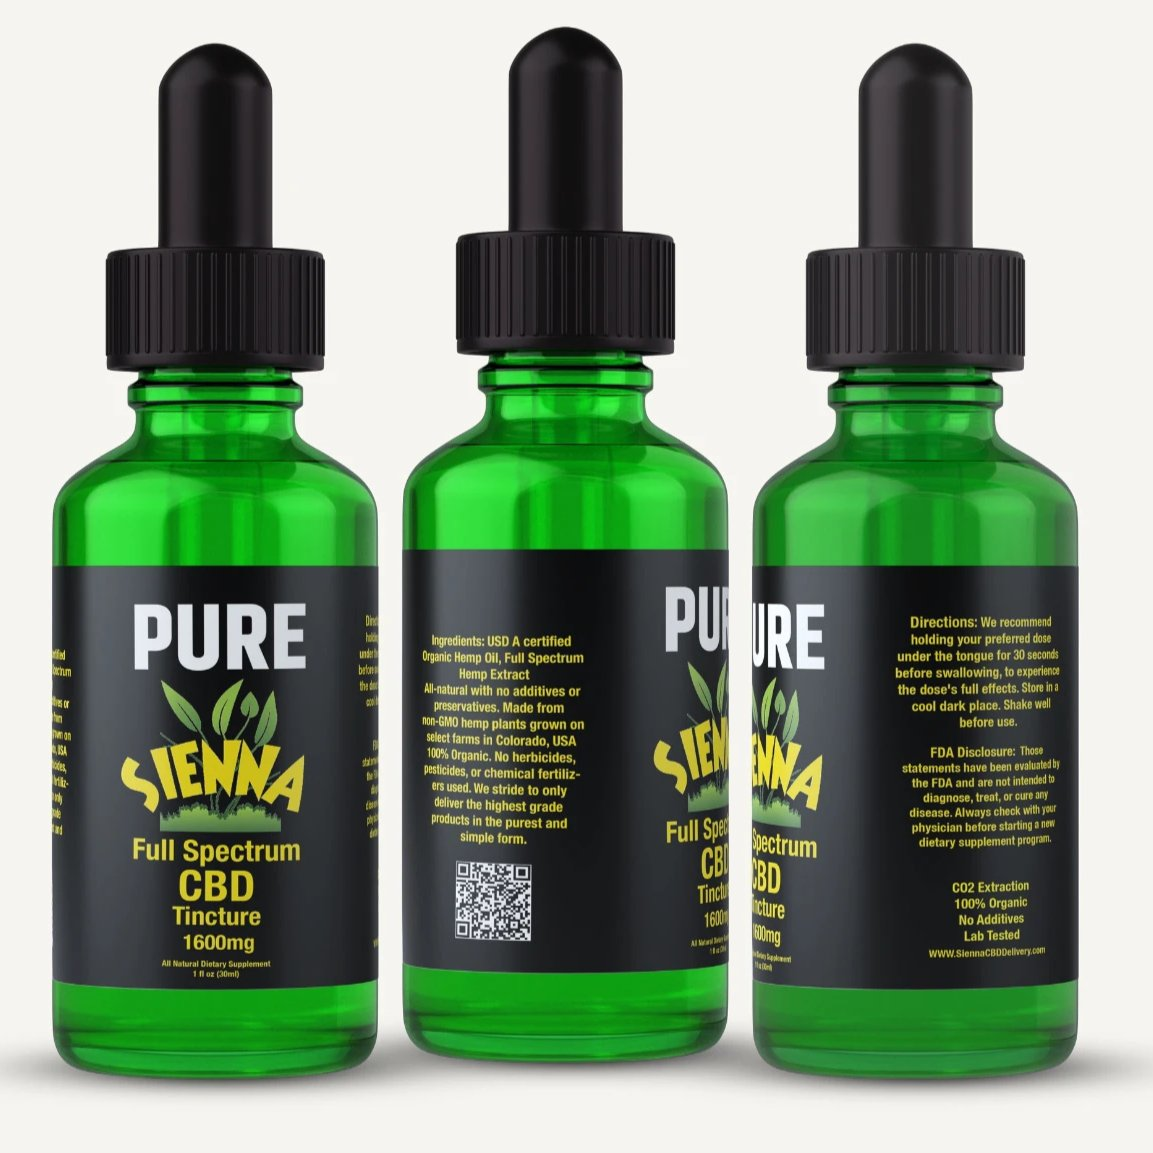 Sienna Pure Full Spectrum Hemp CBD Oil 1600mg